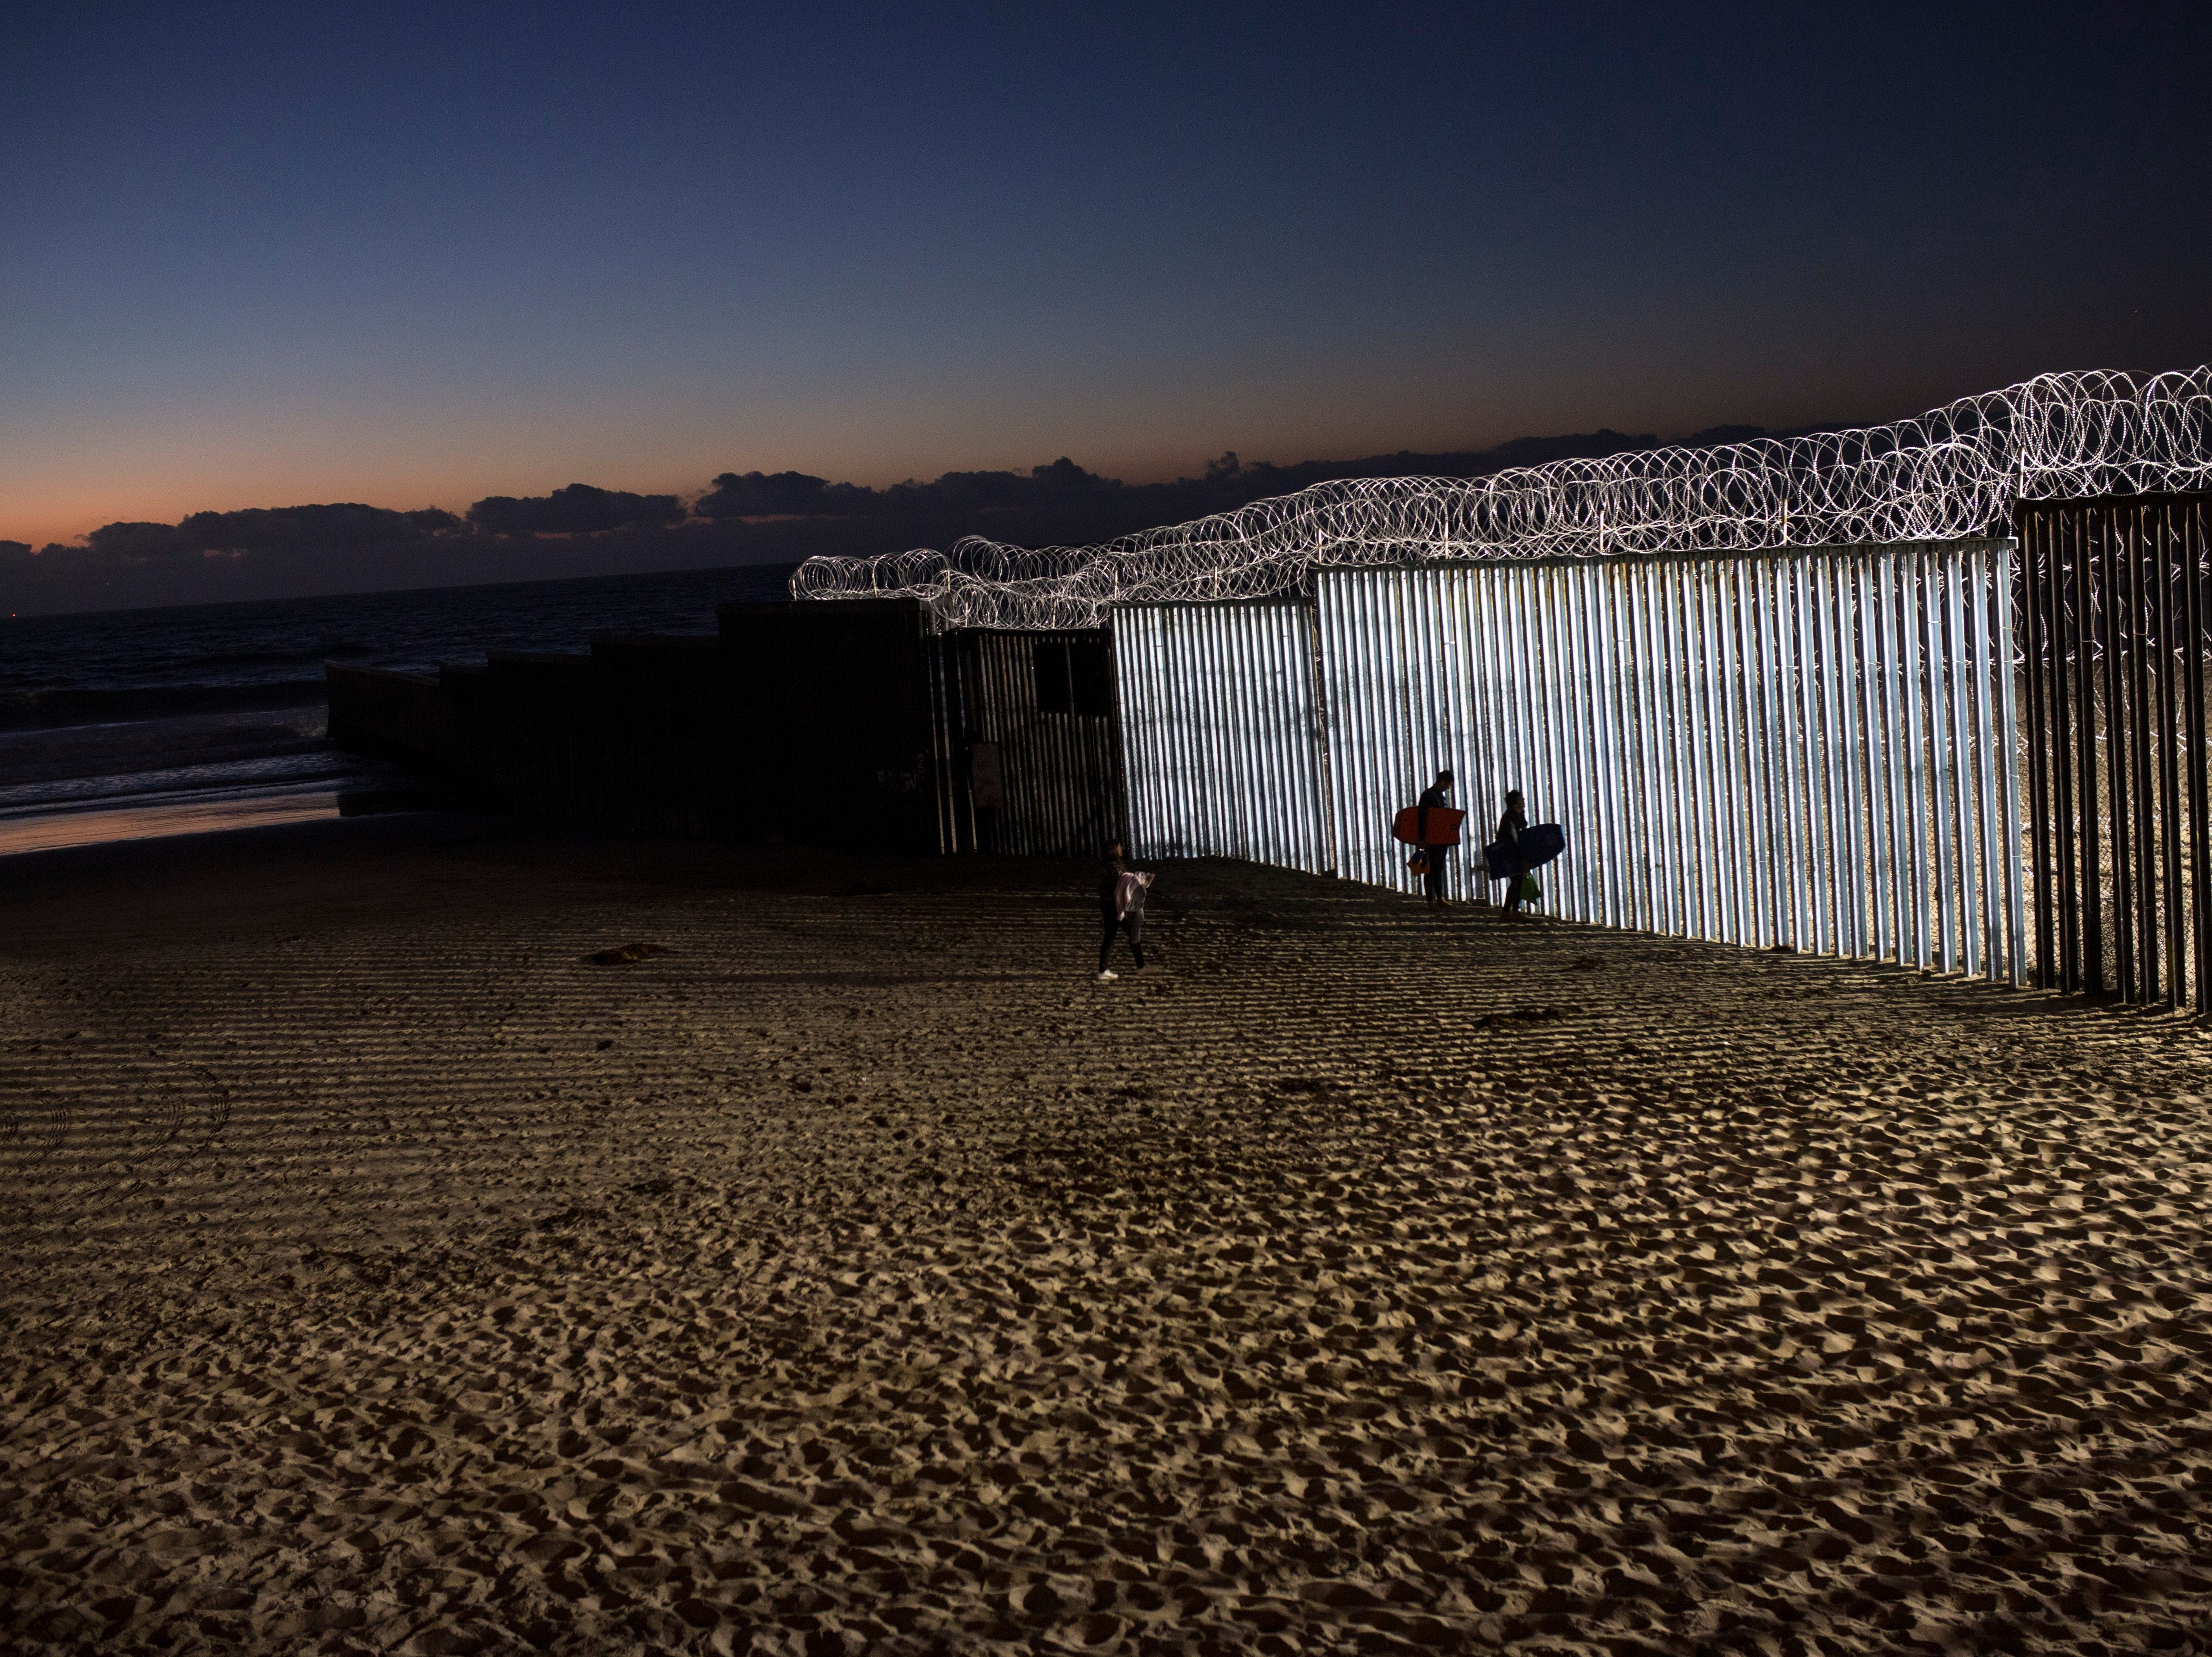 Bodyboarders walk next to the U.S.-Mexico border structure in Tijuana, Mexico, Friday, Nov. 23, 2018. The mayor of Tijuana has declared a humanitarian crisis in his border city and says that he has asked the United Nations for aid to deal with the approximately 5,000 Central American migrants who have arrived in the city.3